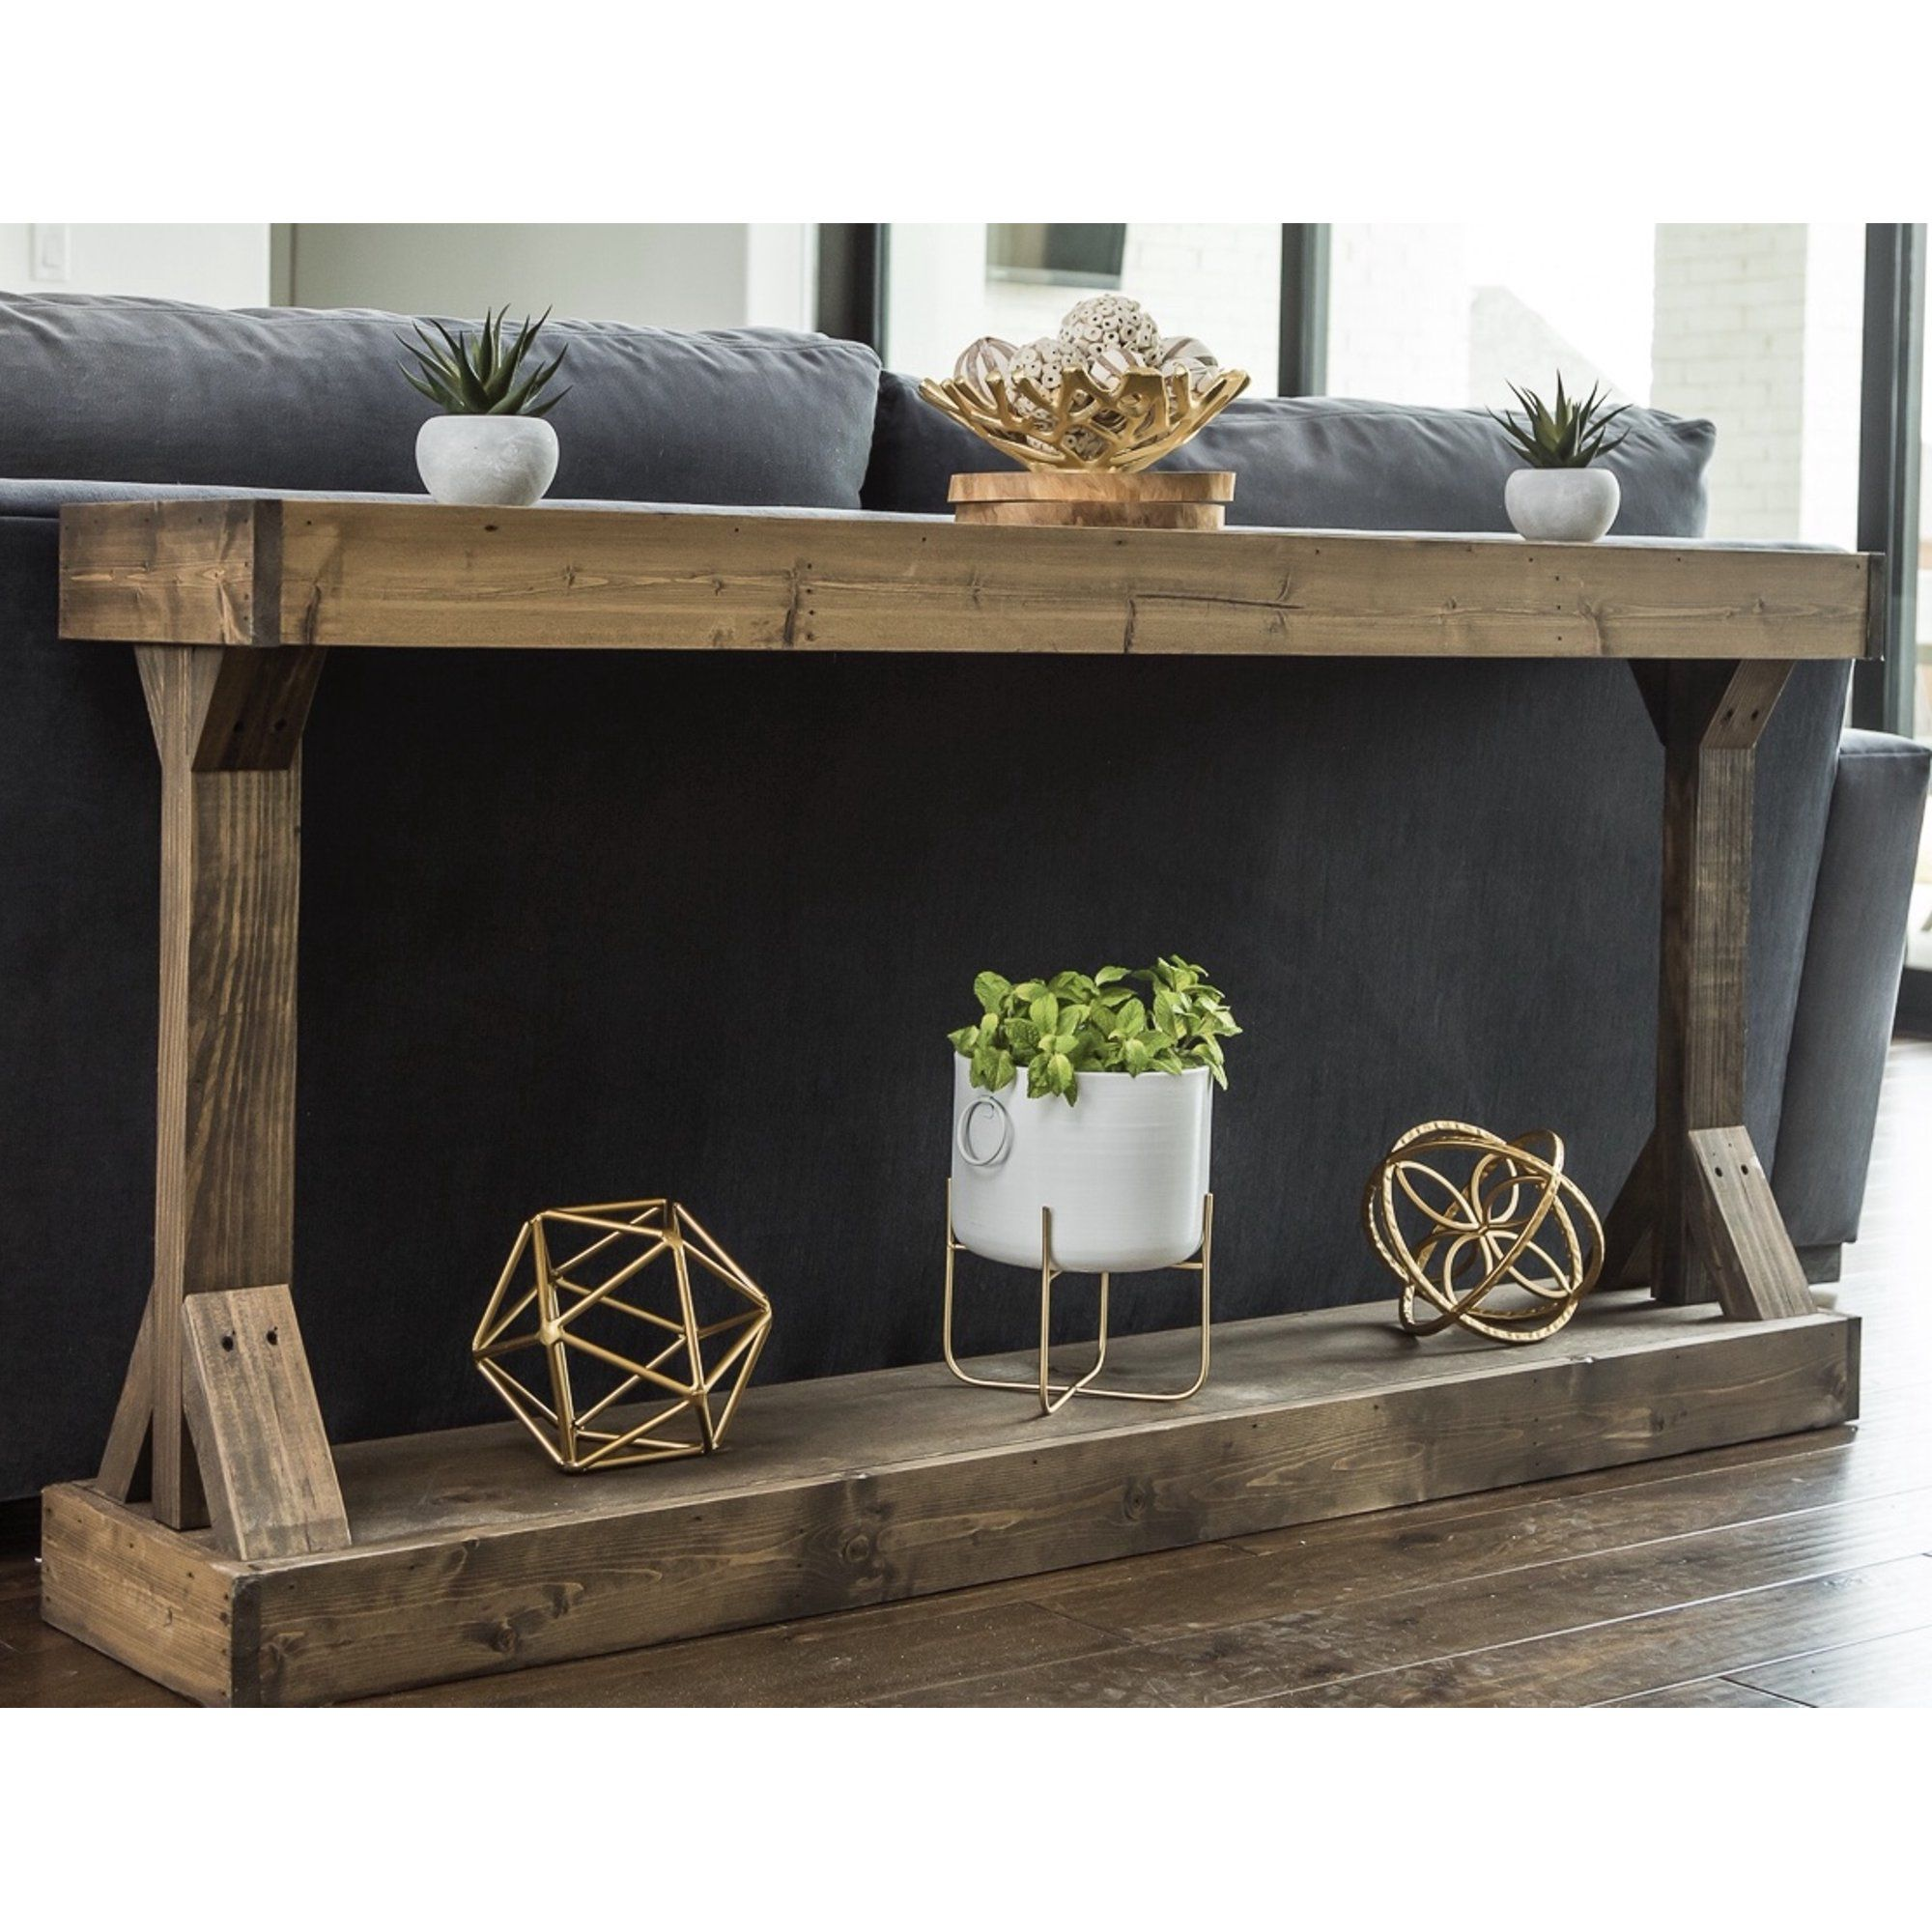 Woven Paths Dark Walnut Large Barb Console Table Walmart Com In 2021 Farmhouse Console Table Large Console Table Sofa Table Decor